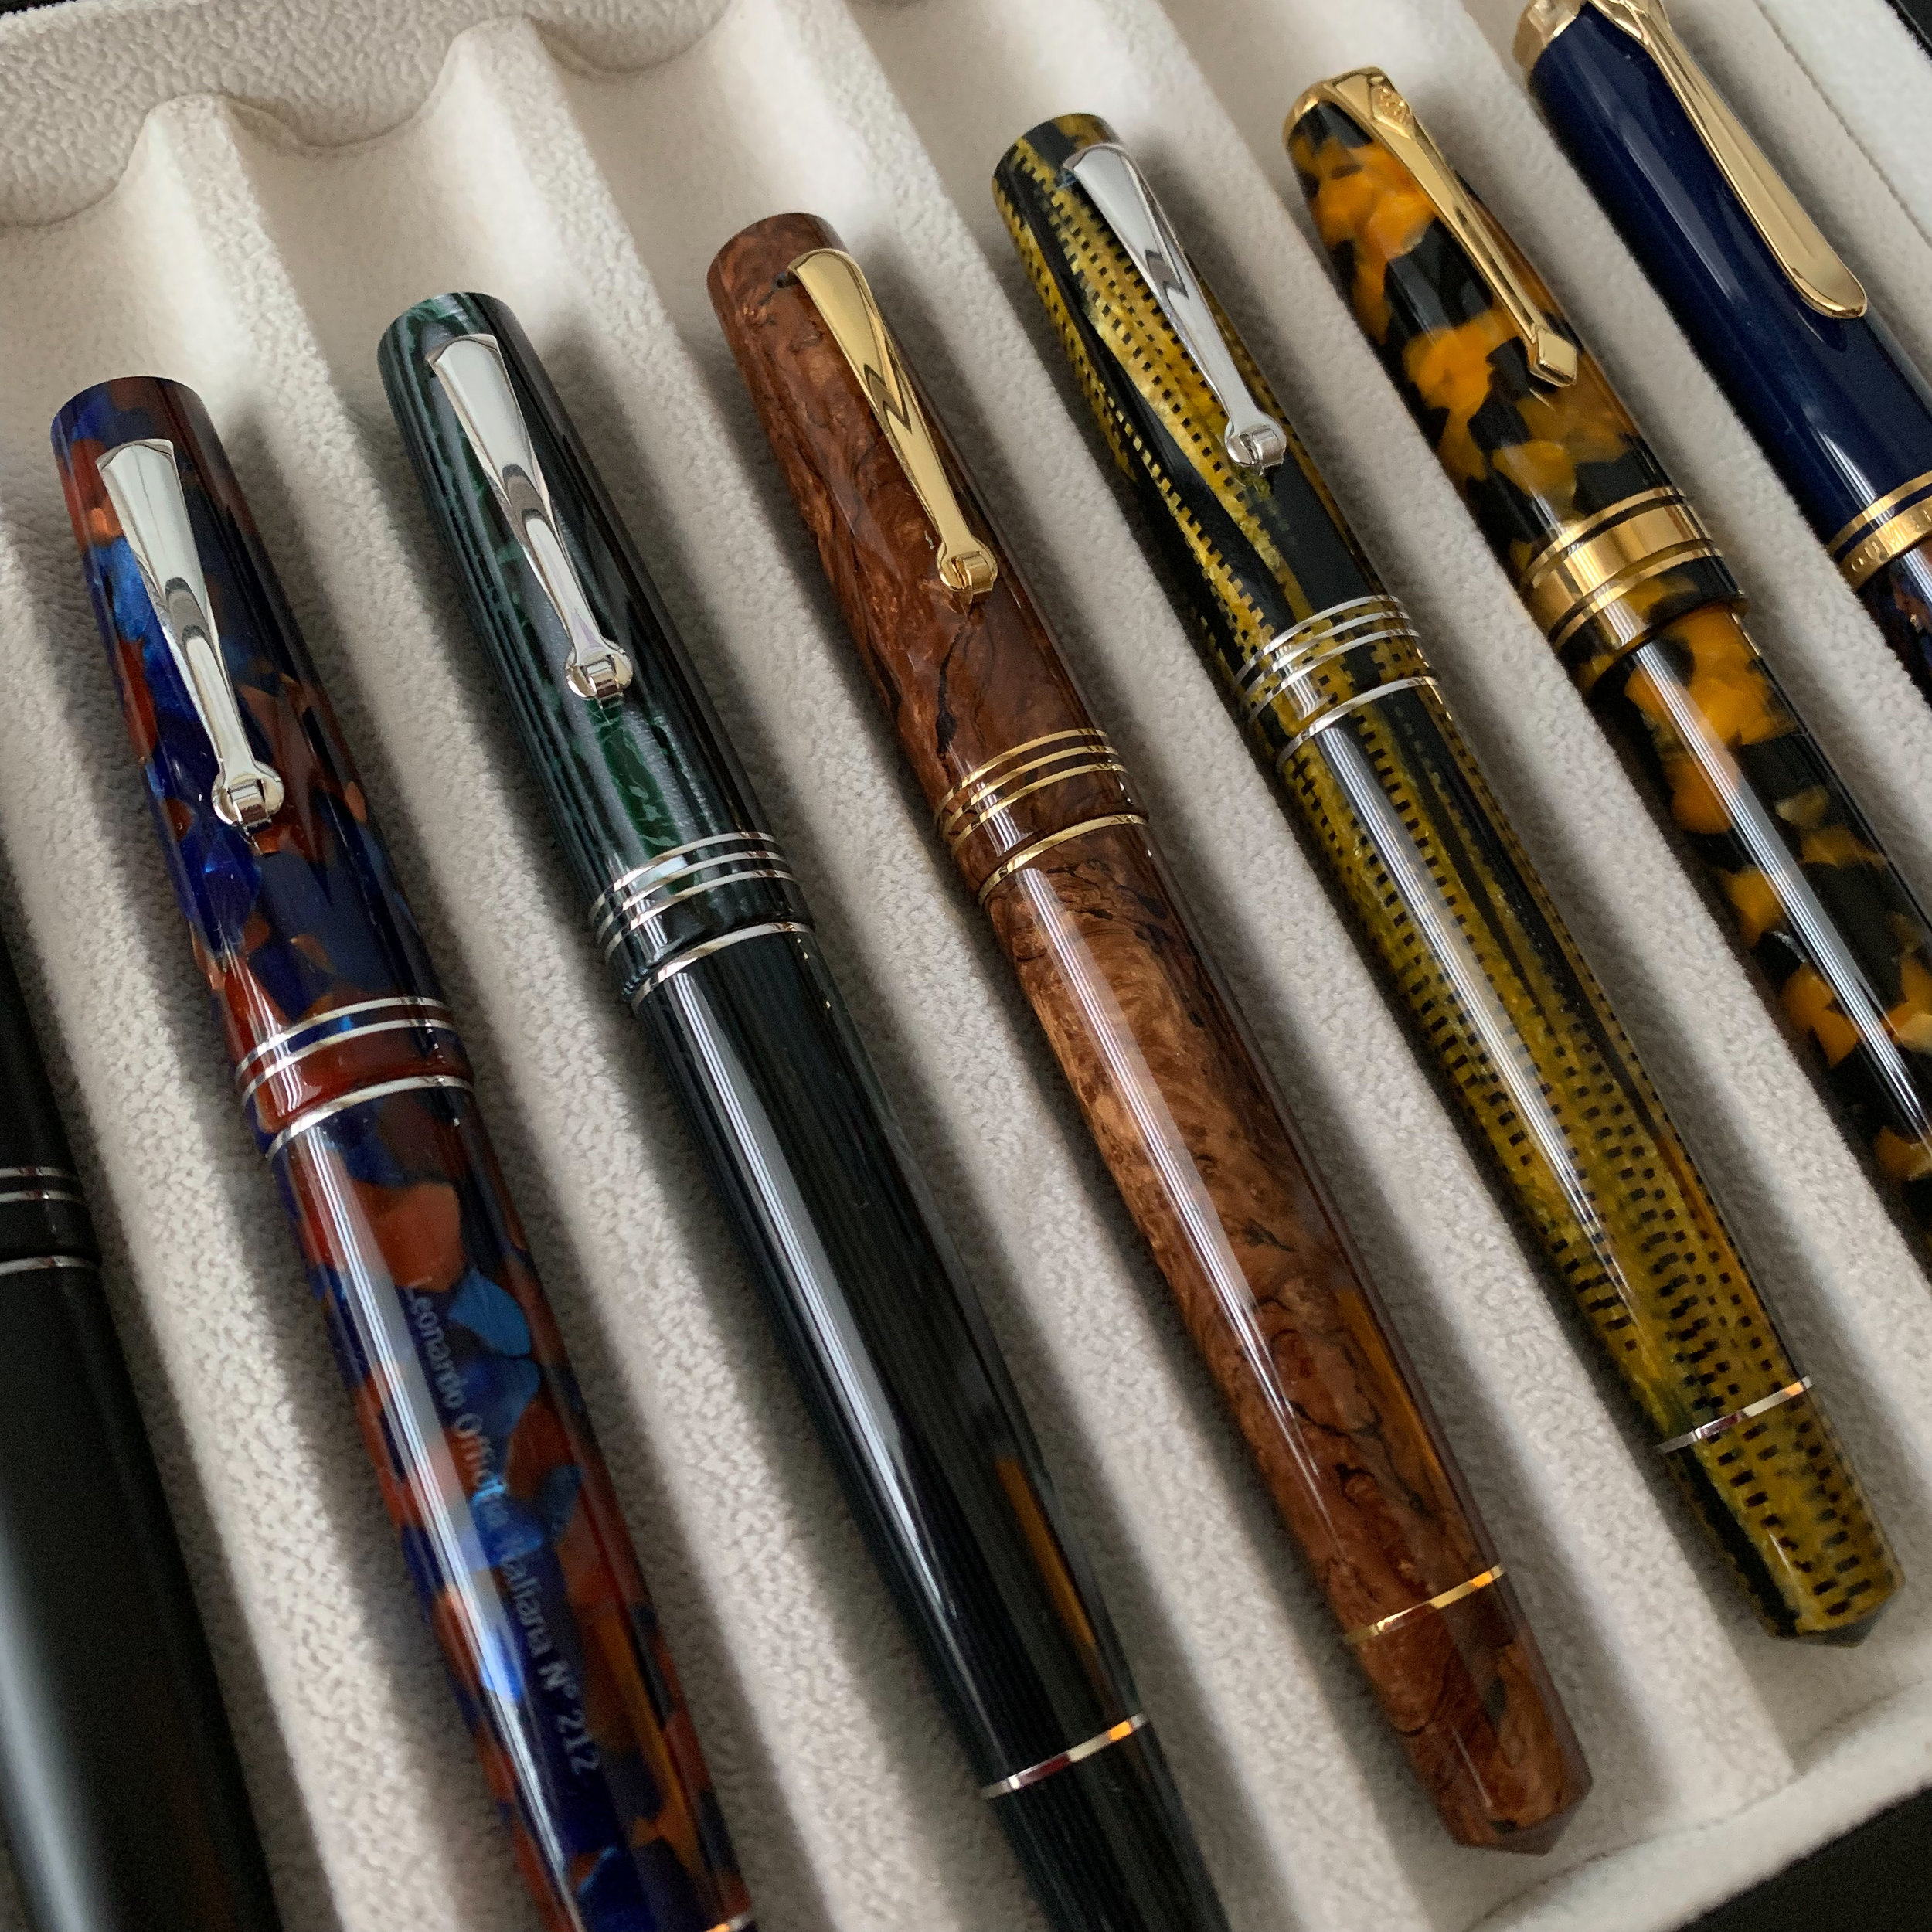 The work Leonardo has done in Italian celluloid is what initially drew me to the brand. The three pens in the center are the piston-filler Momento Zero in, from left, Omas Arco Verde celluloid, Omas Burlwood celluloid, and Omas Burkina celluloid.